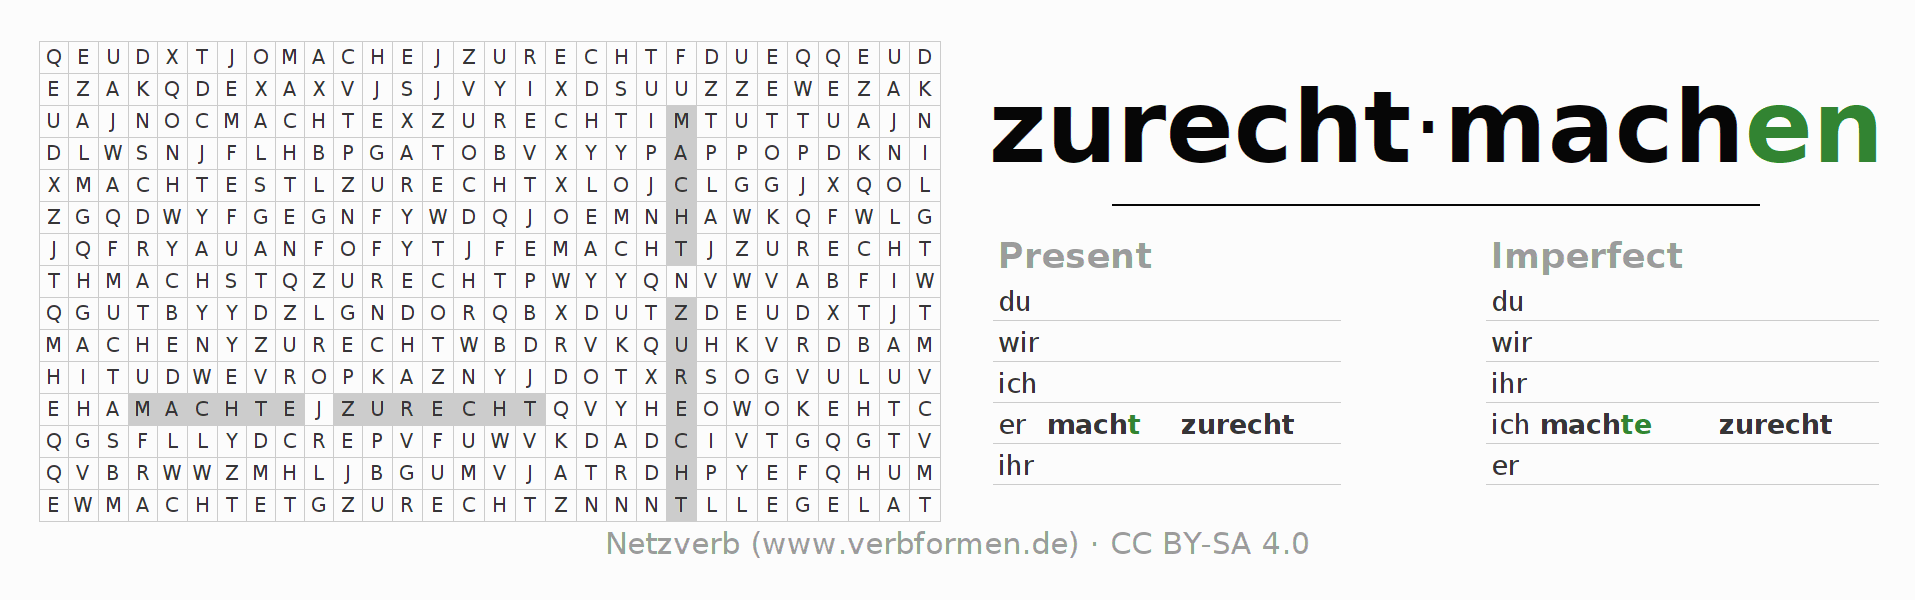 Word search puzzle for the conjugation of the verb zurechtmachen